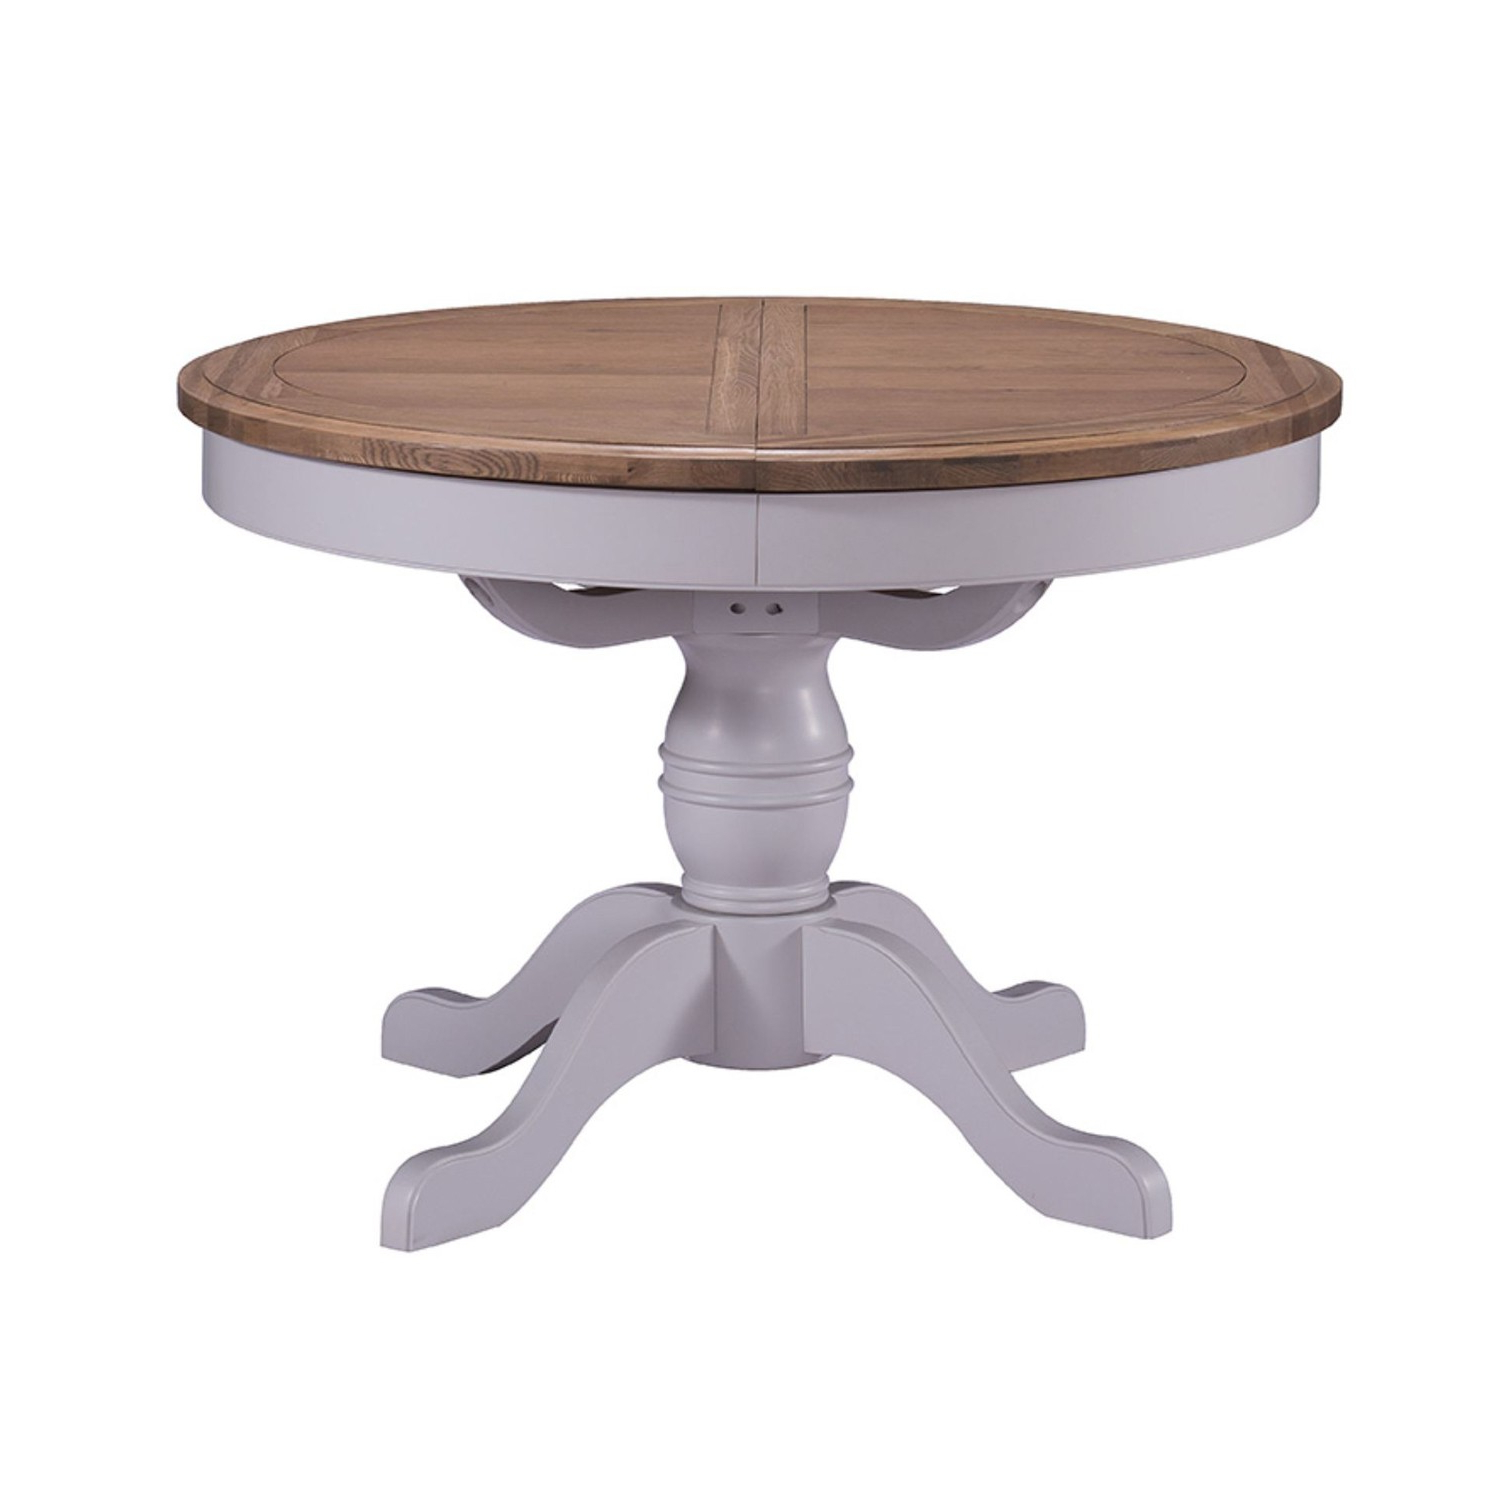 Hewn Oak Lorraine Pedestal Extending Dining Tables with Best and Newest Dining Tables Stunning Round Extendable Dining Table 60